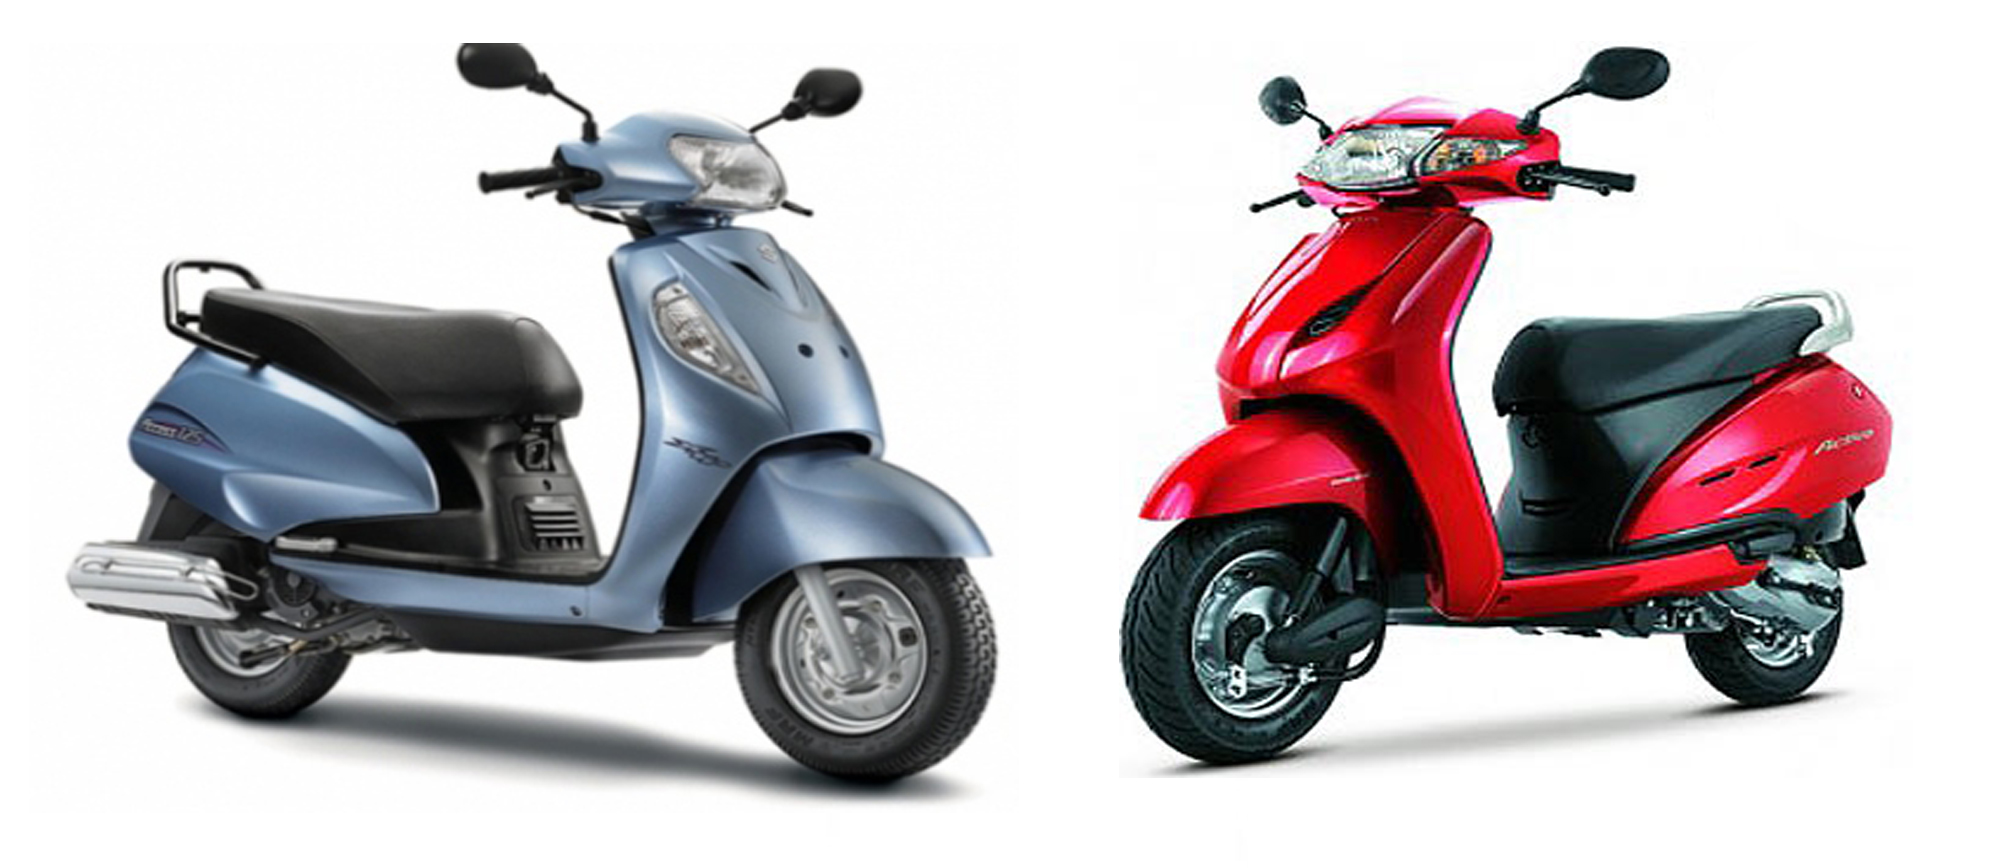 honda activa The new 2018 honda activa 5g will be loaded with new features, equipment, more intimidating design and new colour options honda activa 5g: expected price, india launch date, images, features.